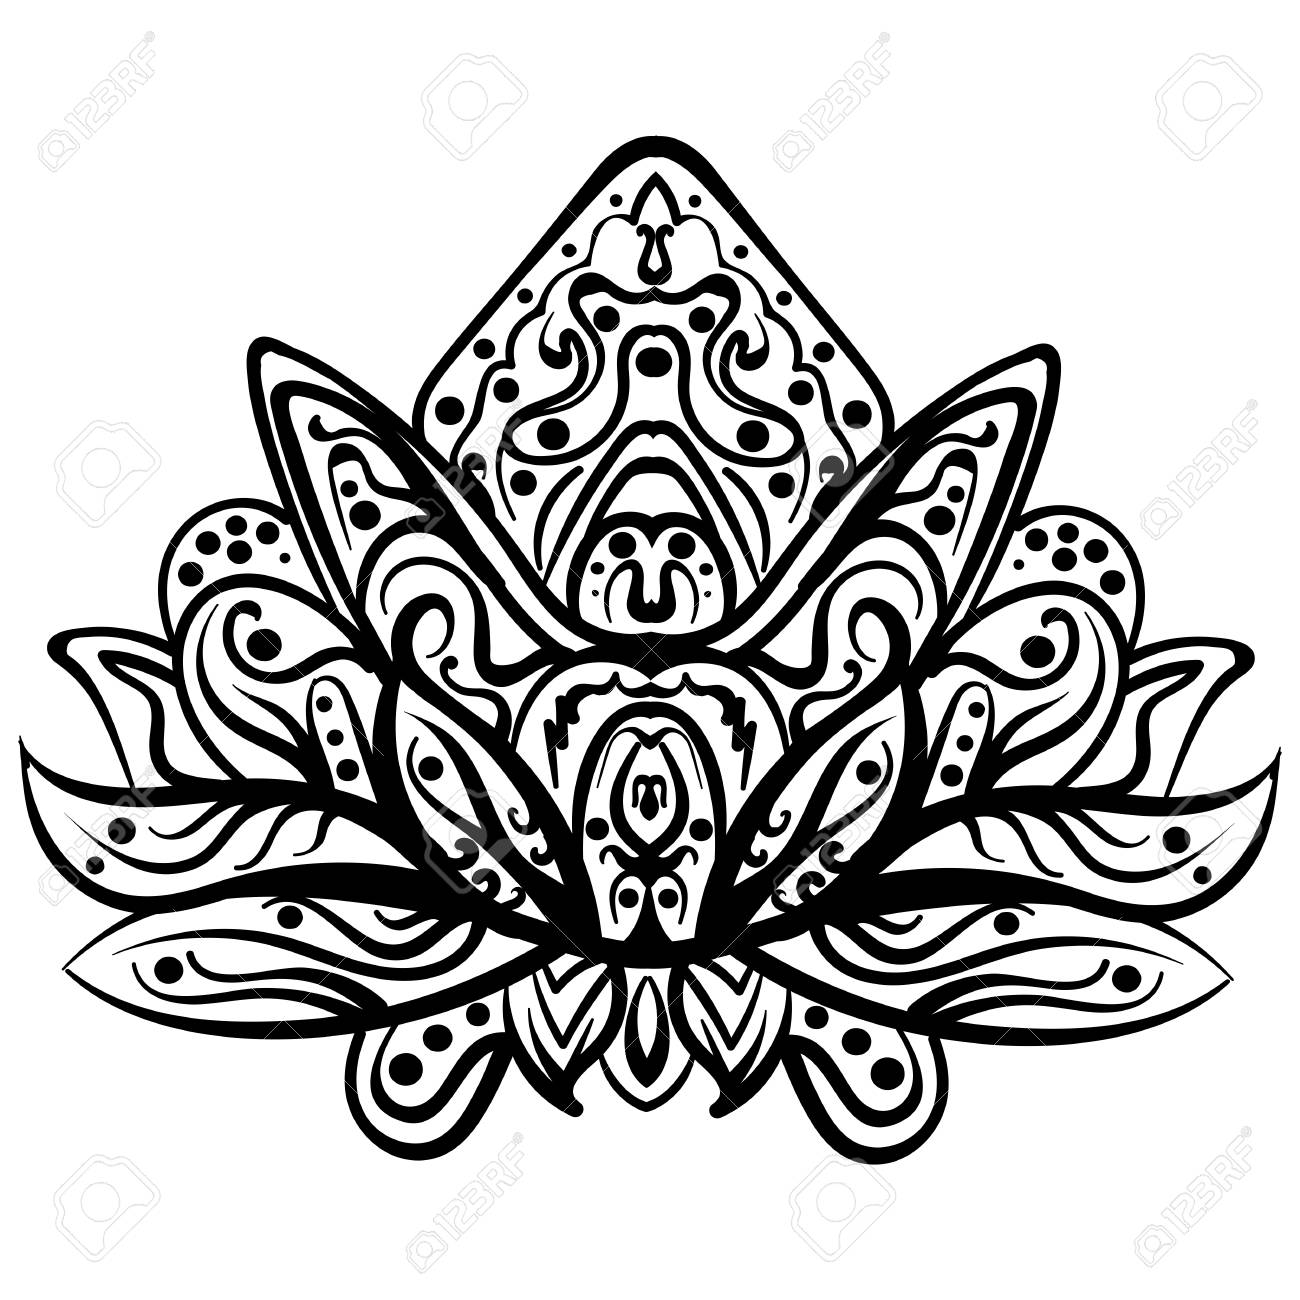 Henna designs drawing at getdrawings free for personal use 1300x1300 ornamental lotus ethnic henna tattoo patterned indian paisley izmirmasajfo Image collections